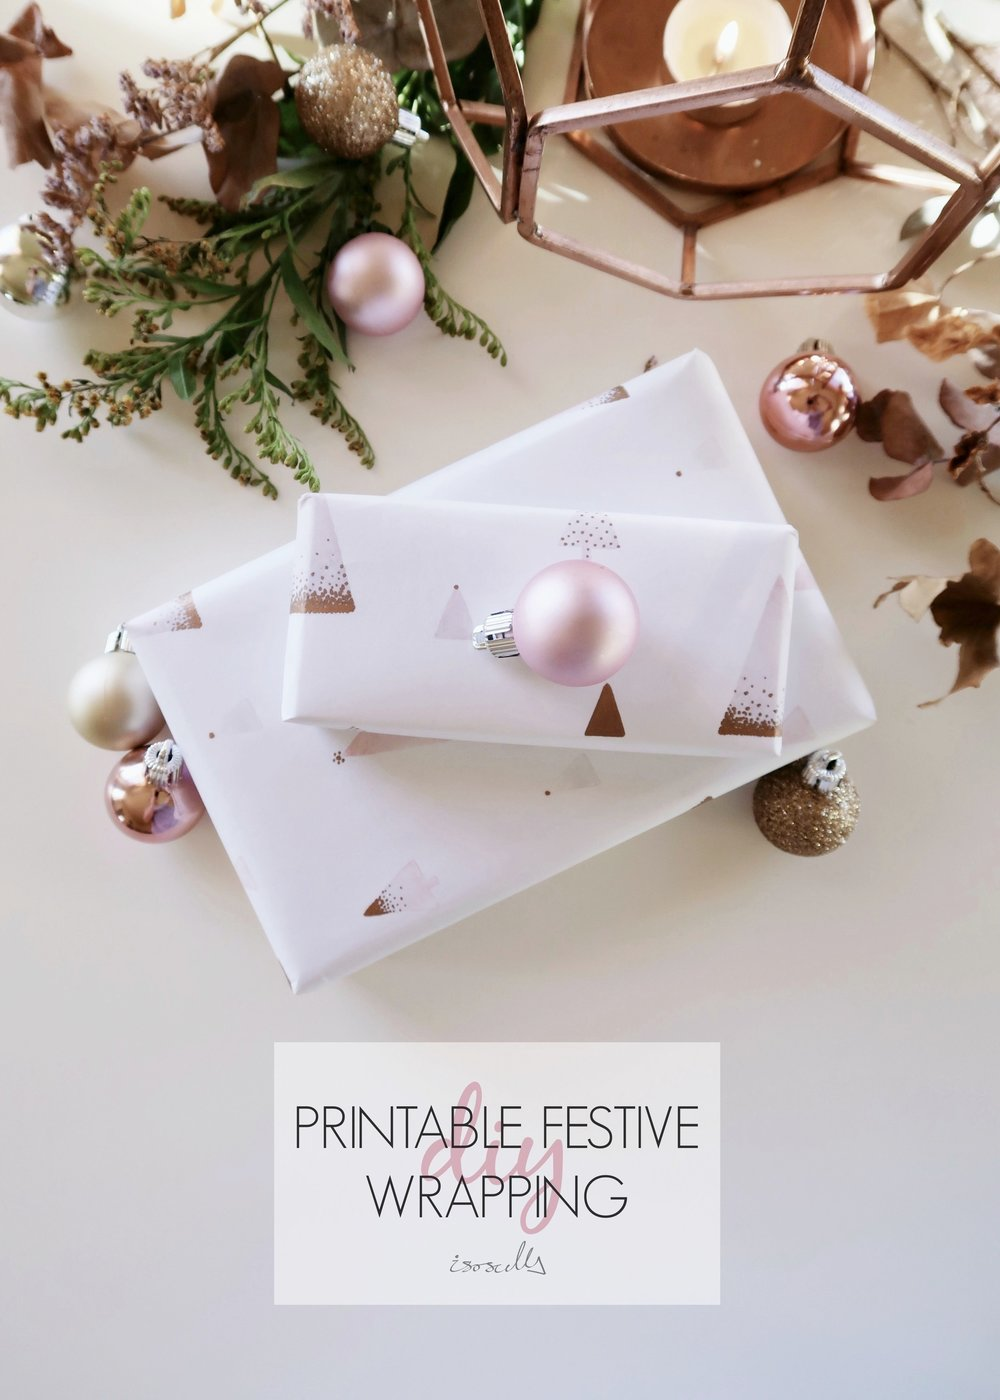 DIY Printable Festive Wrapping by Isoscella